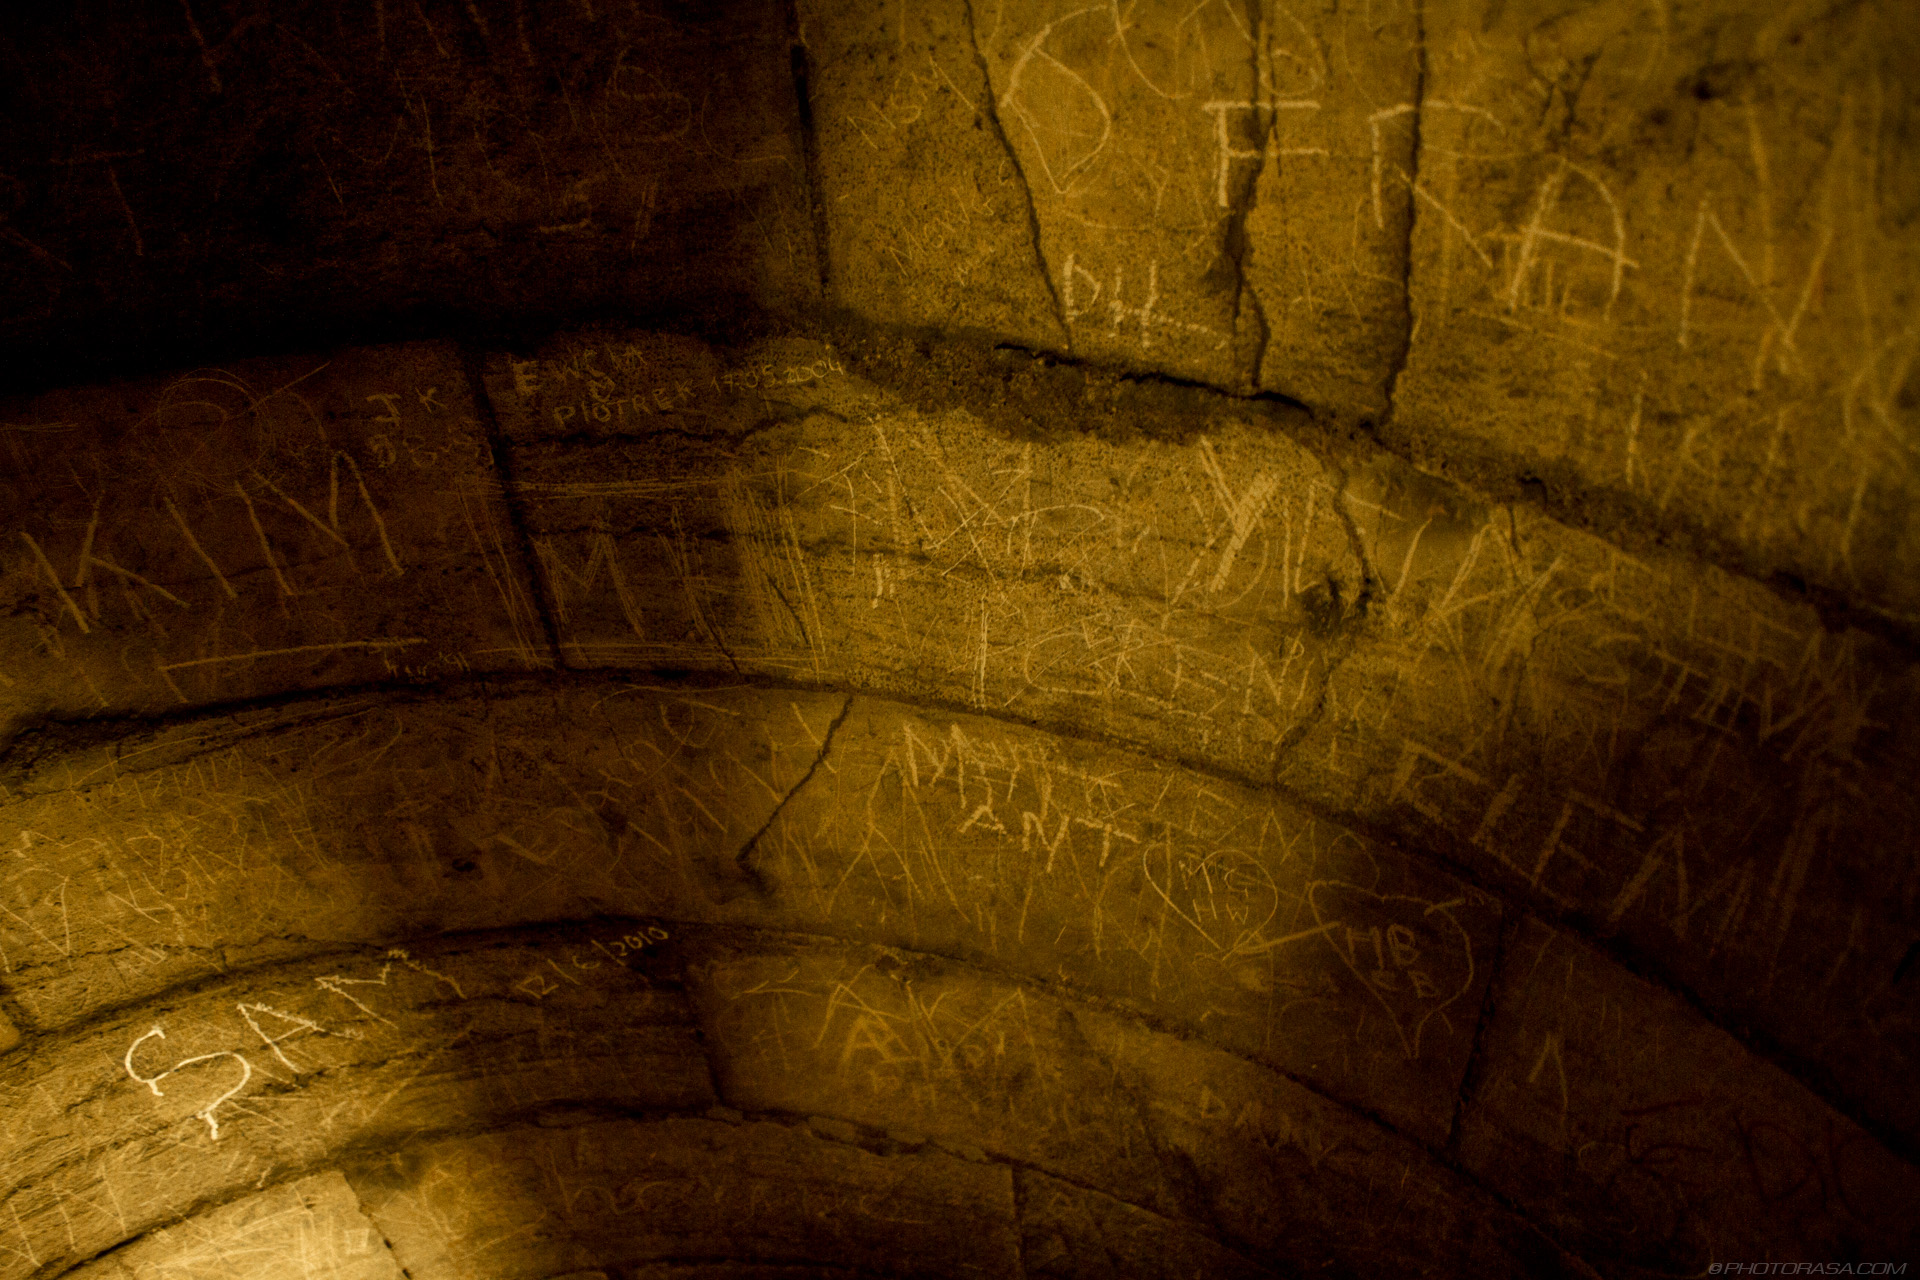 http://photorasa.com/places/yorkminster-cathedral/attachment/graffiti-on-old-cathedral-wall/